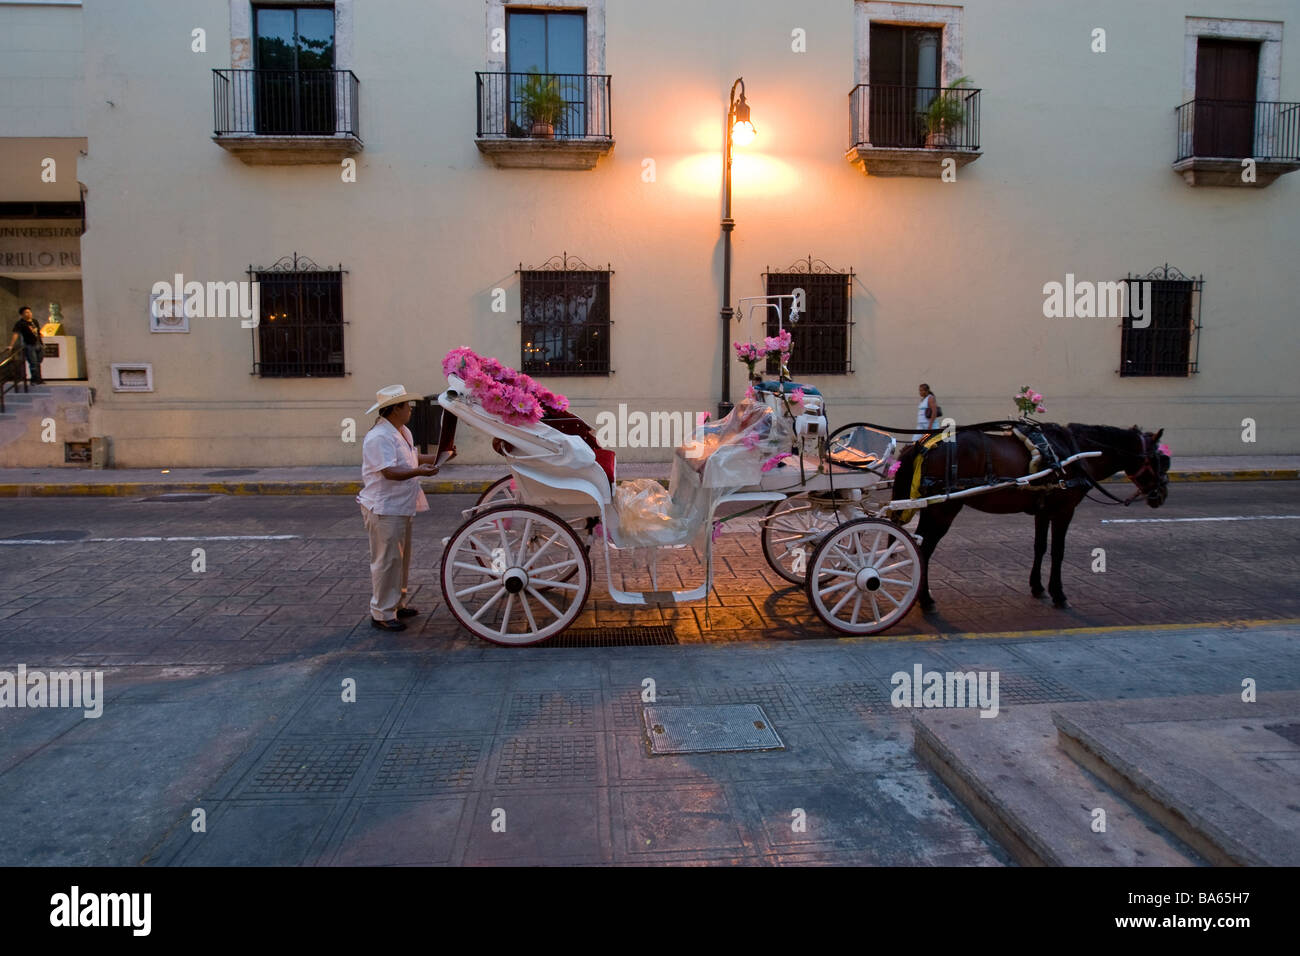 A carriage driver with horse and carriage in Merida Mexico Stock Photo